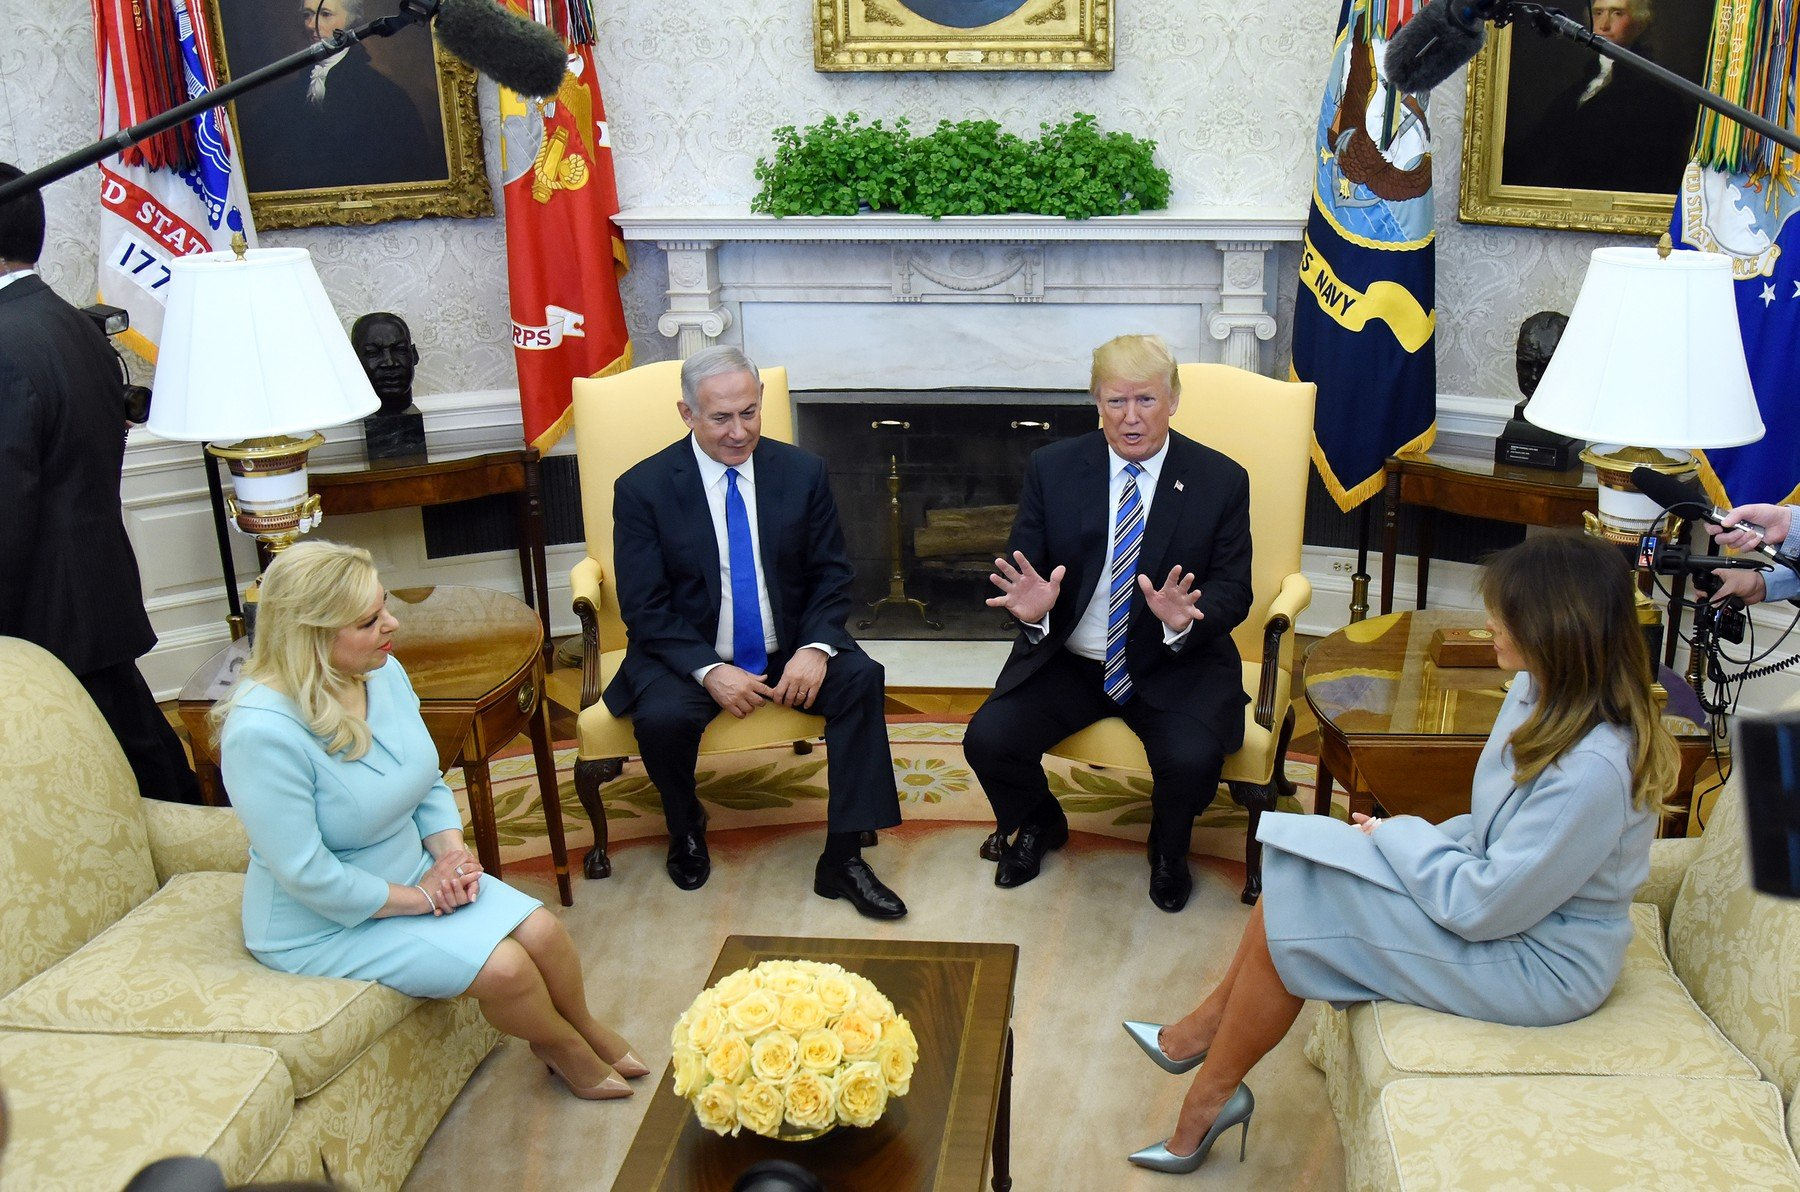 United States President Donald J. Trump and first lady Melania Trump meet with Prime Minister Benjamin Netanyahu and Sara Netanyahu of Israel in the Oval Office of the White House in Washington, DC, March 5, 2018., Image: 365199337, License: Rights-managed, Restrictions: , Model Release: no, Credit line: Profimedia, ADMedia